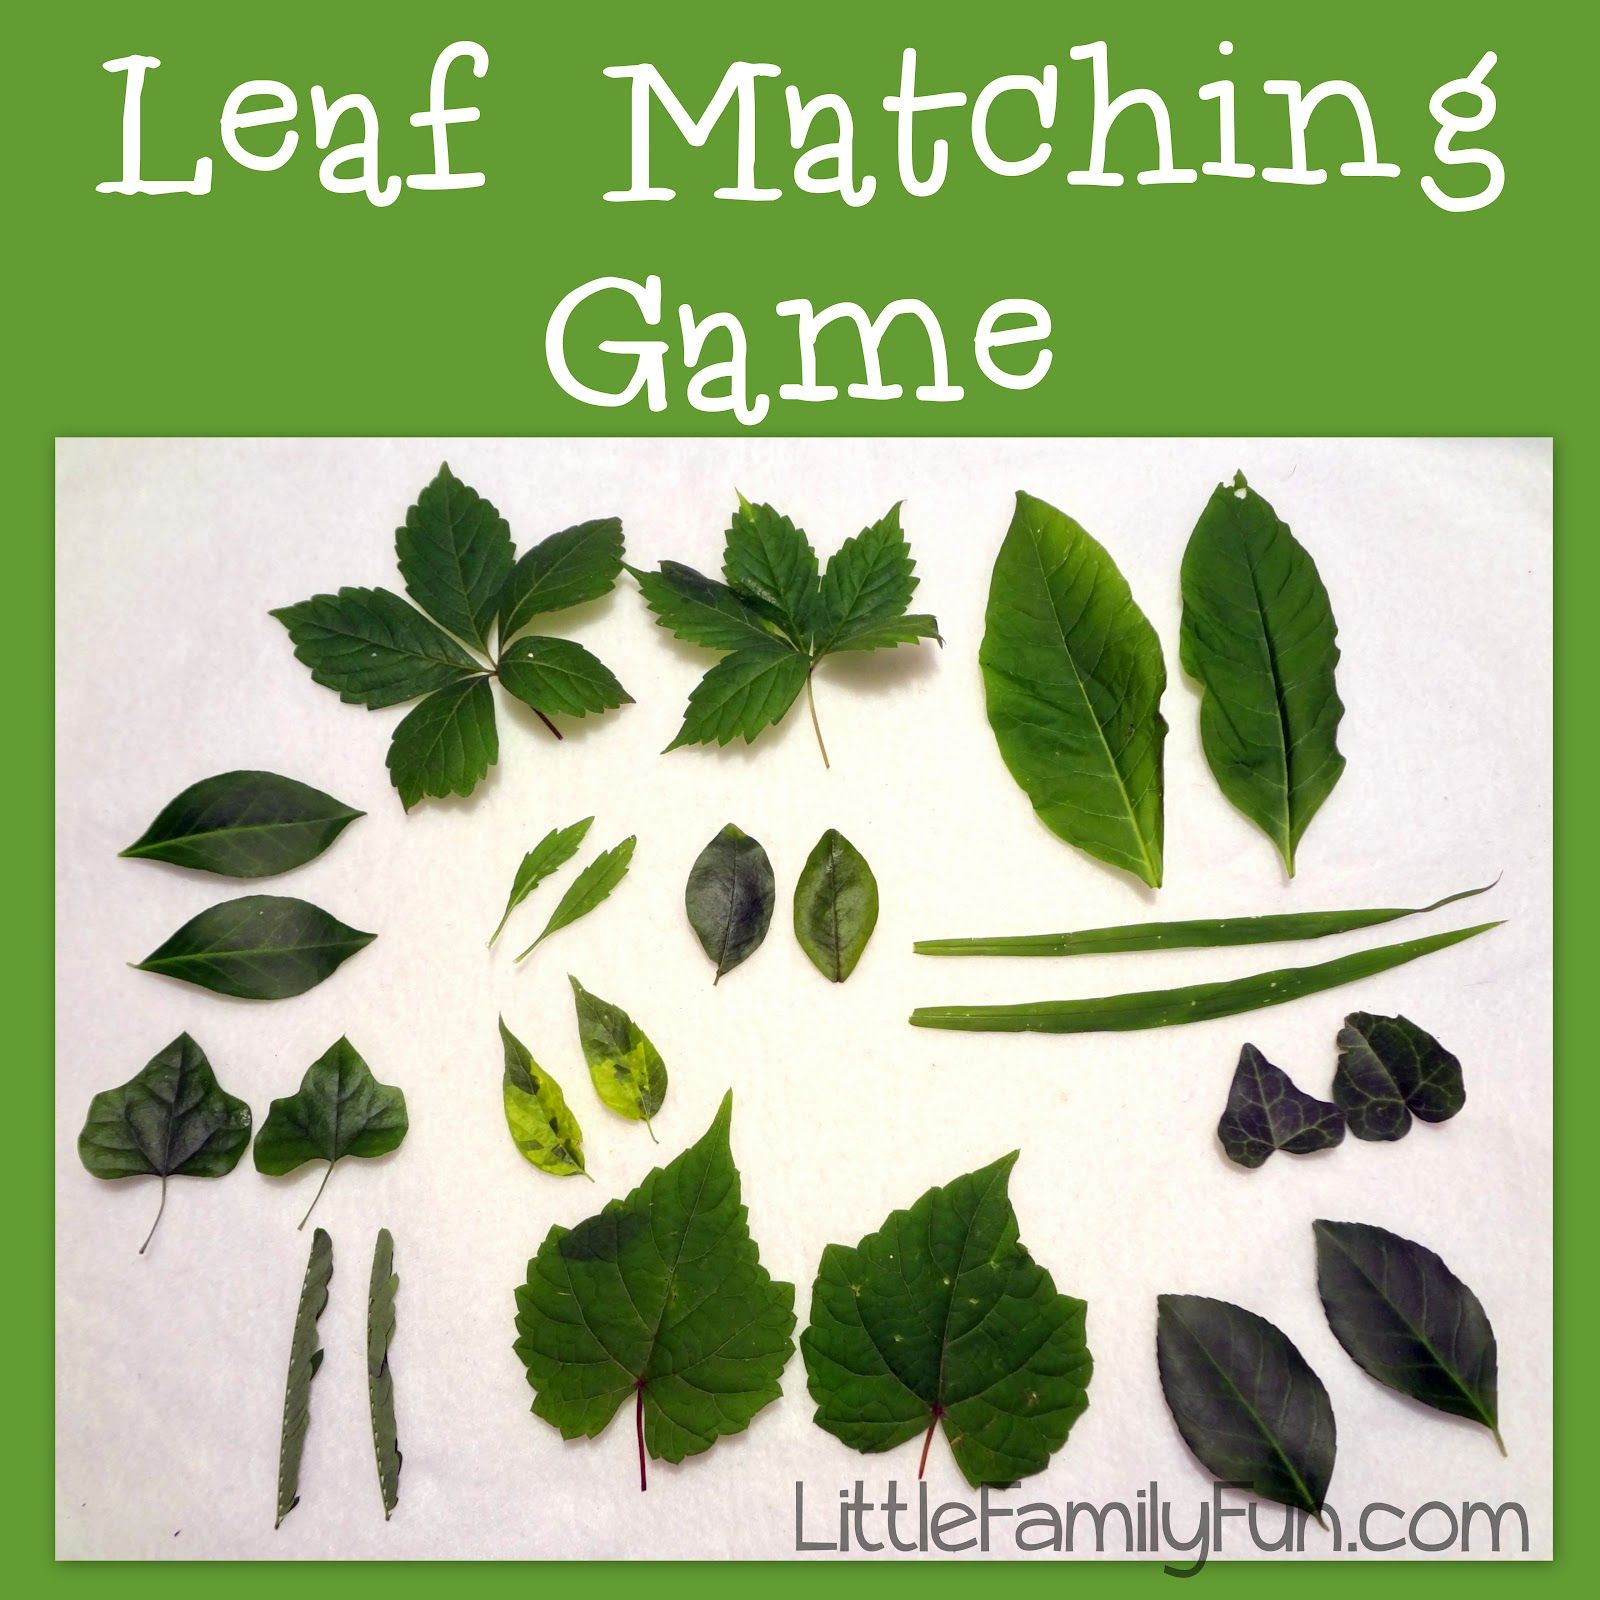 Leaf Matching Game Could Also Make It A Leaf Scavenger Hunt